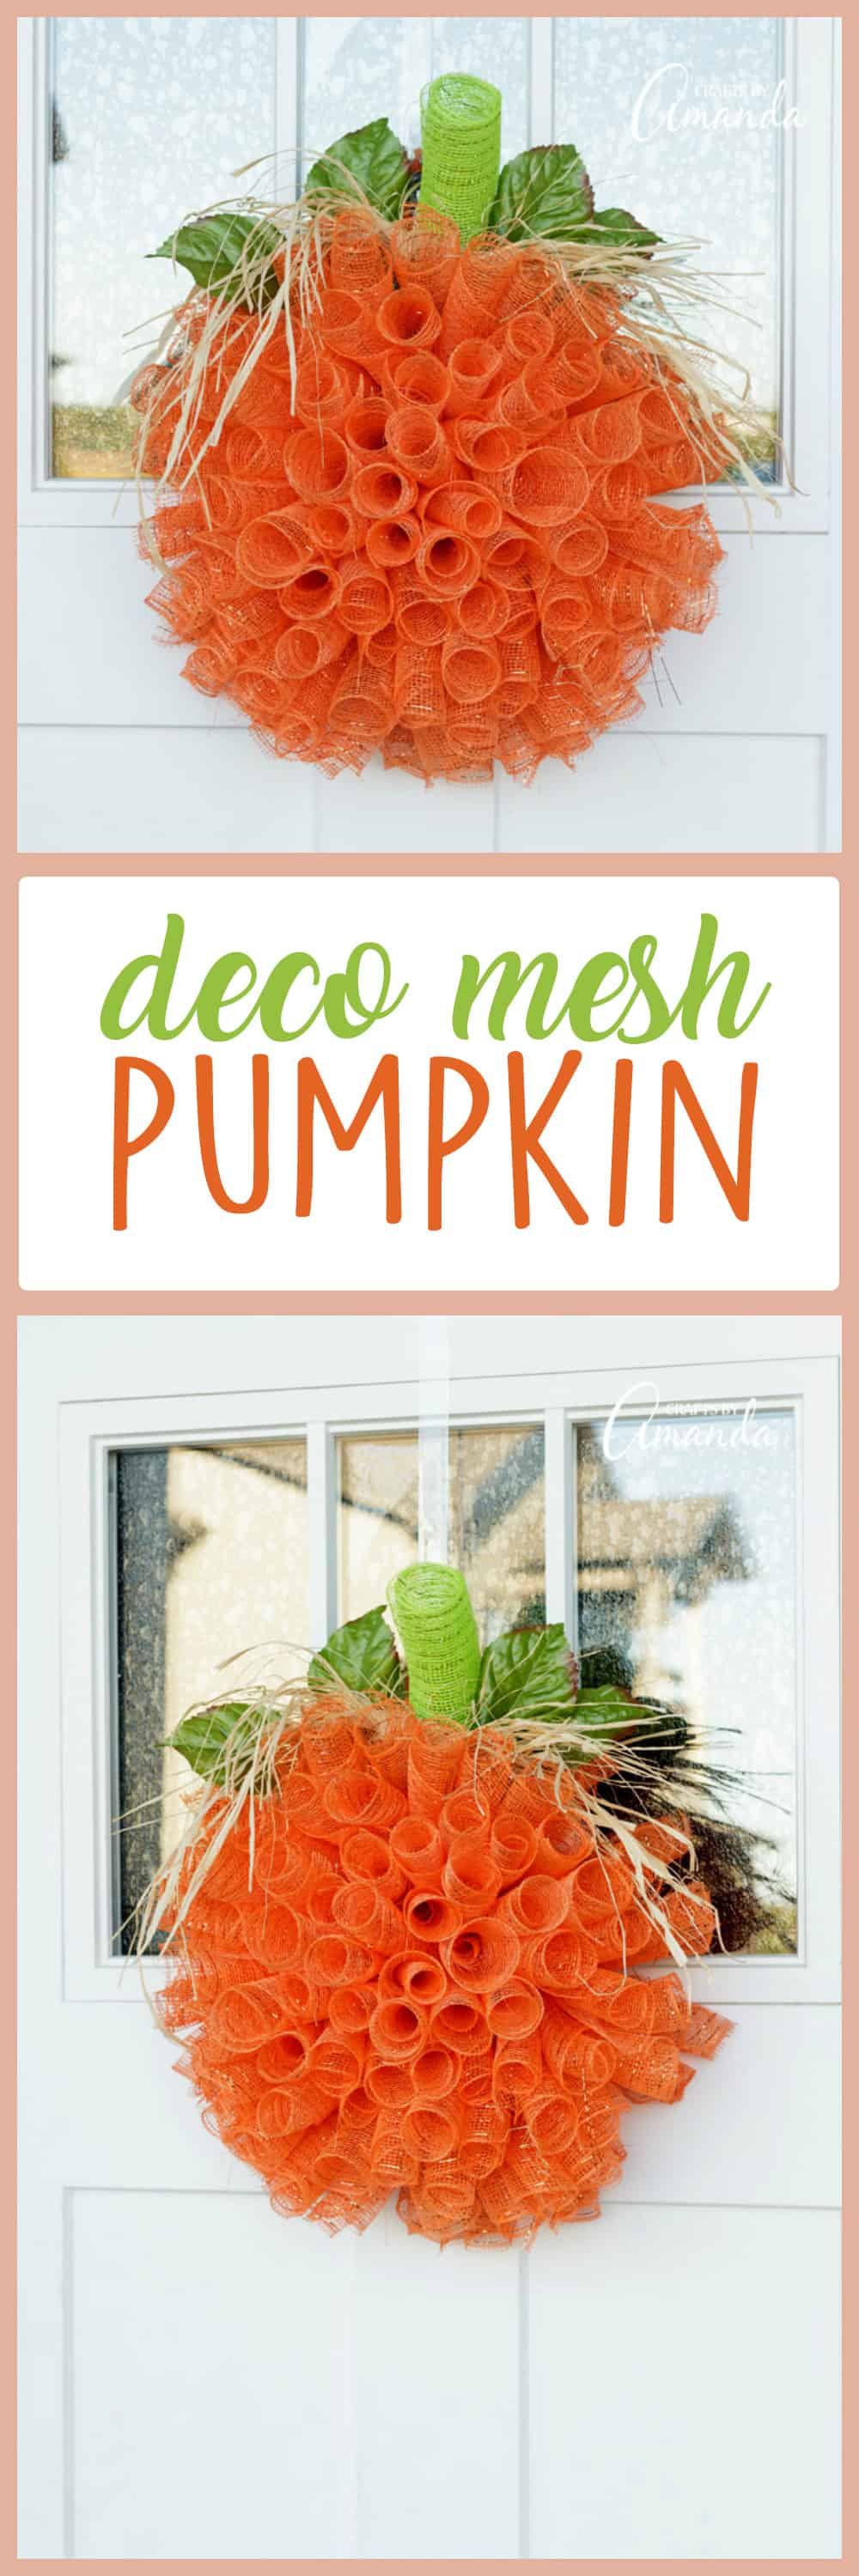 Learn to make this wonderful deco mesh pumpkin wreath to hang on your door this fall! This is a quick and easy project, great for a girl's craft night!